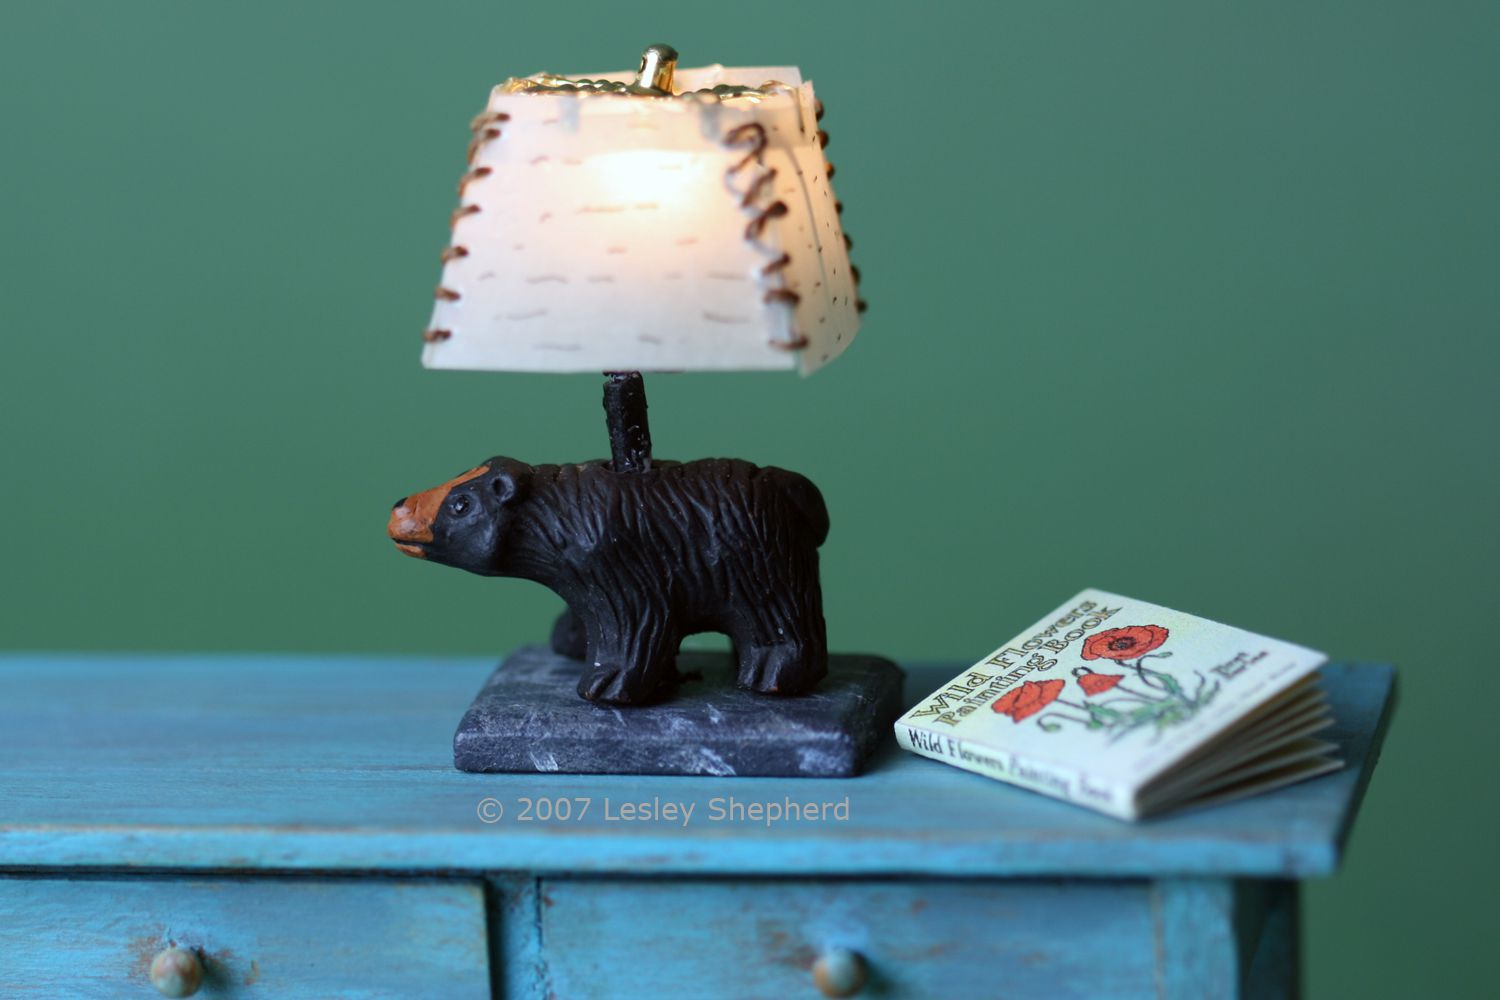 How to Make Working Dollhouse Lamps and Model Fires